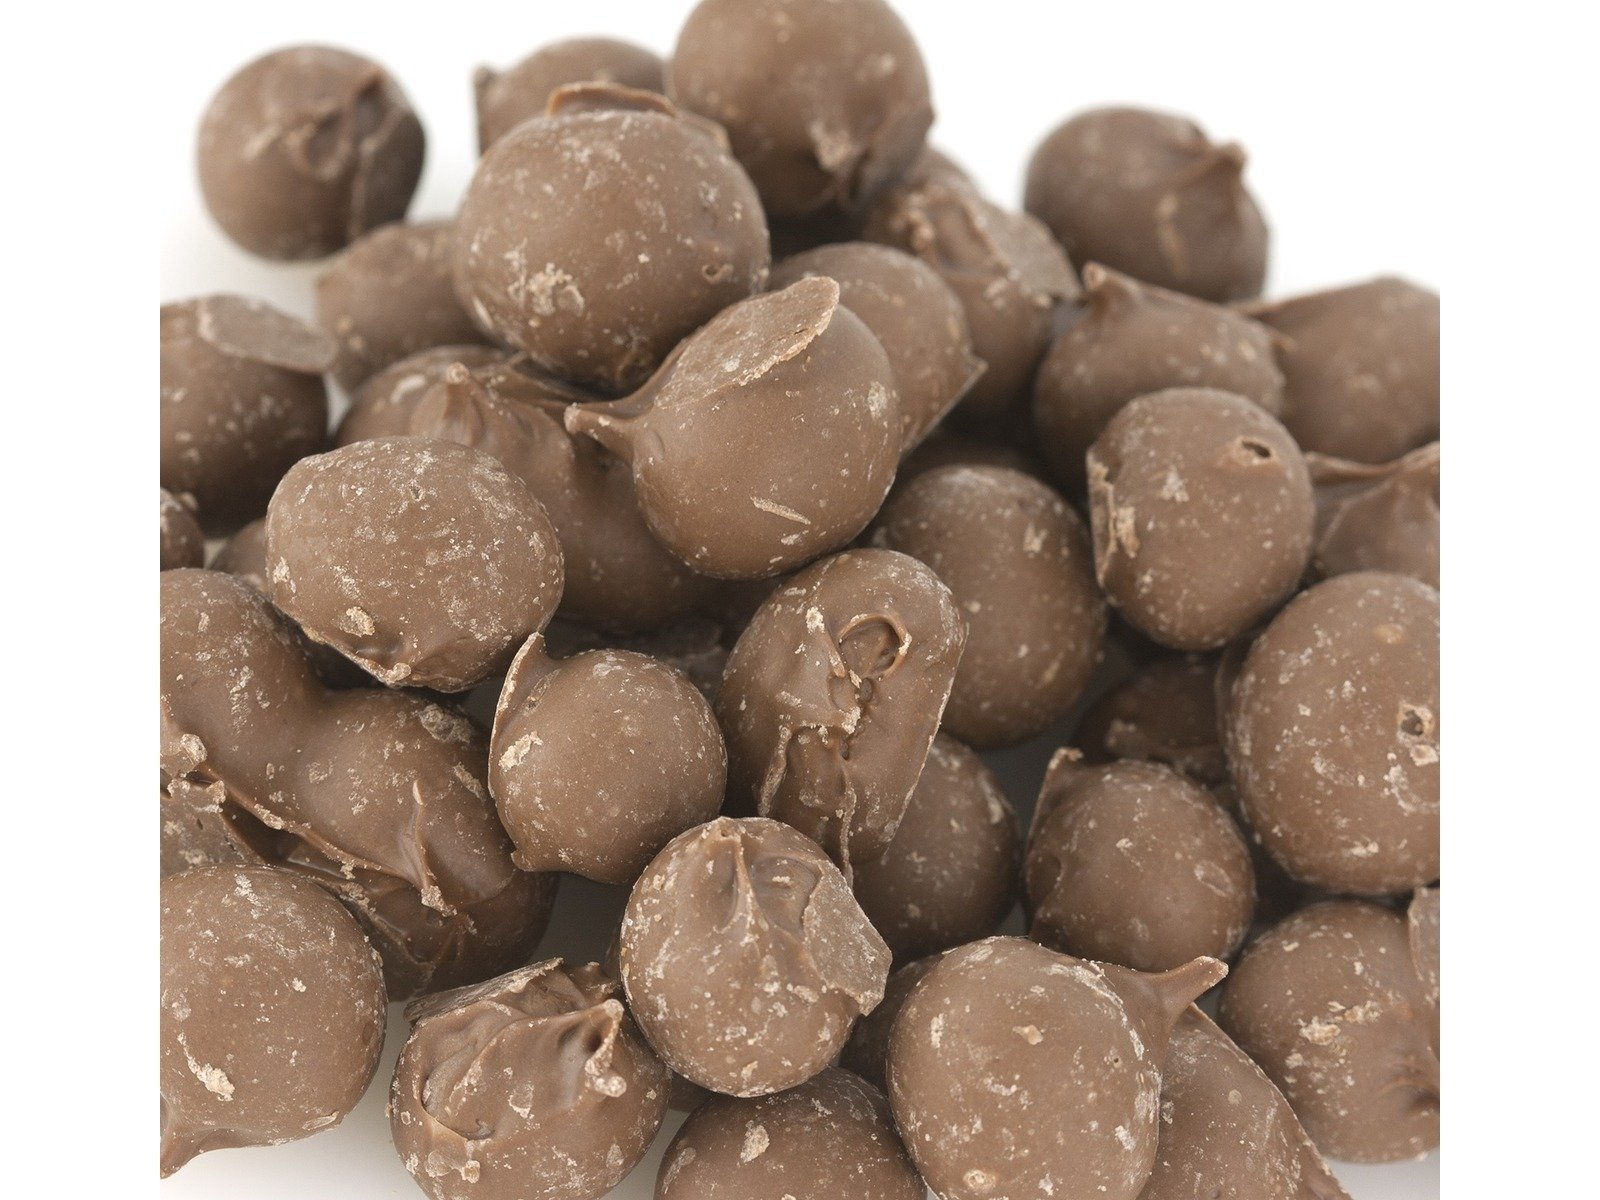 Double Dipped Peanuts Milk Chocolate Covered Peanuts 5 pounds by GRANOLA KITCHEN